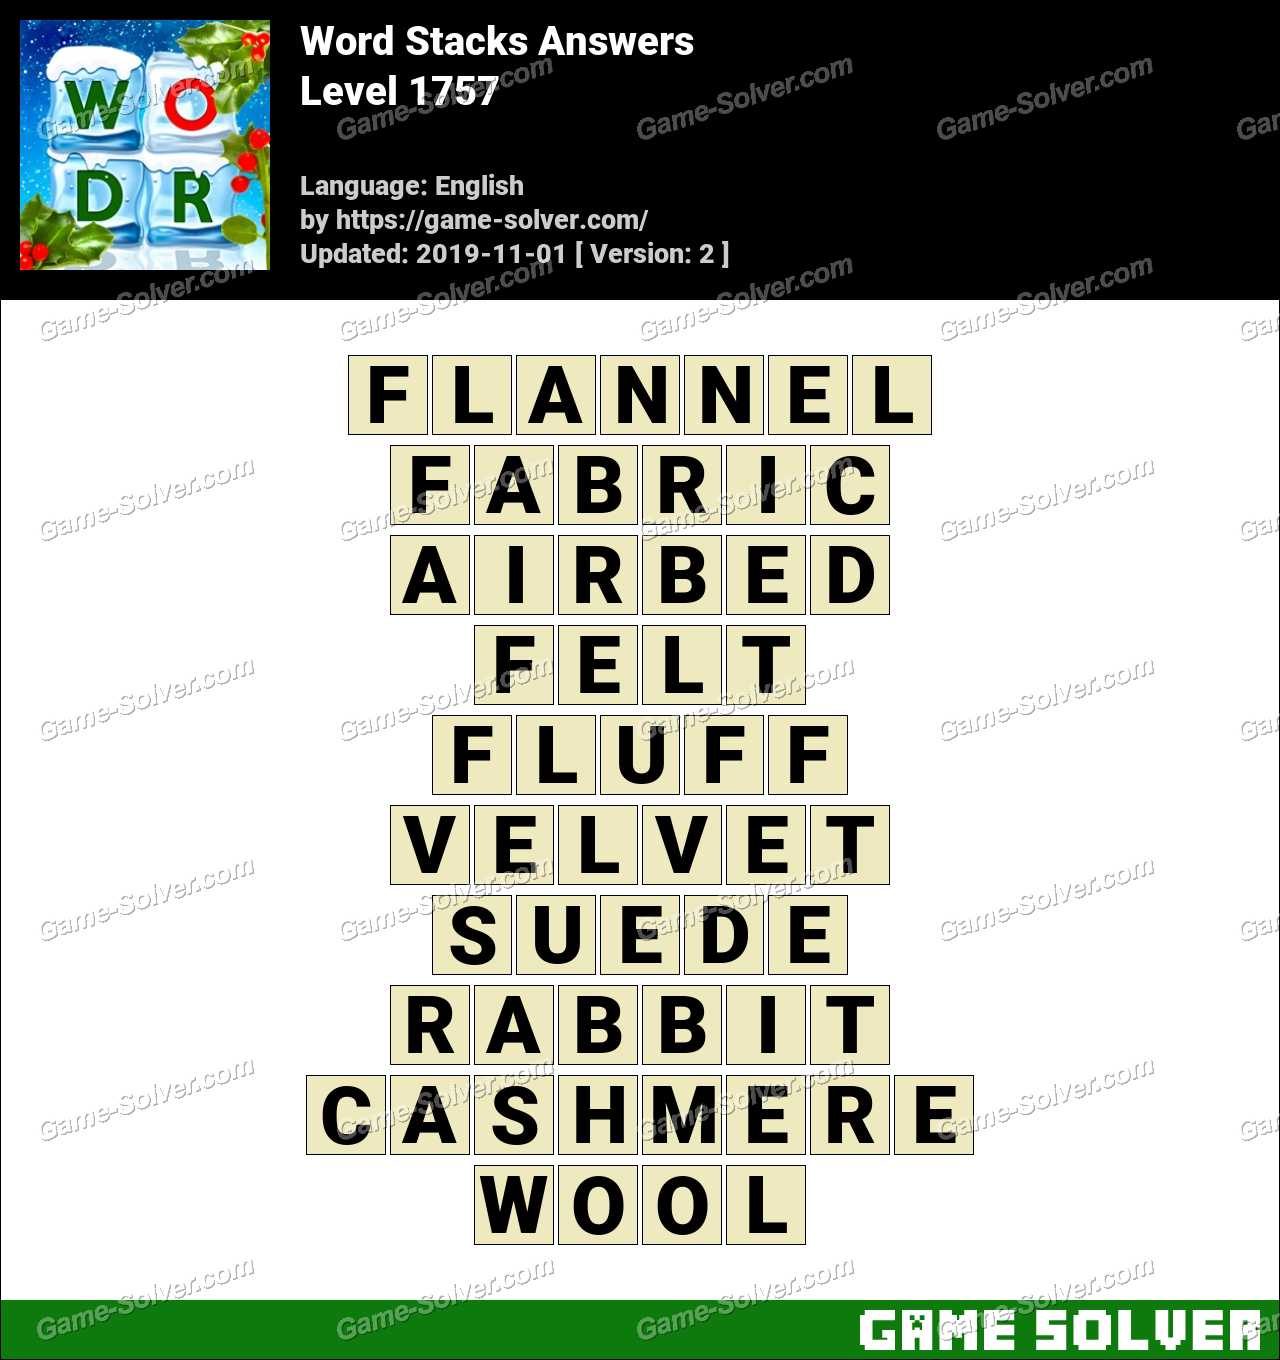 Word Stacks Level 1757 Answers